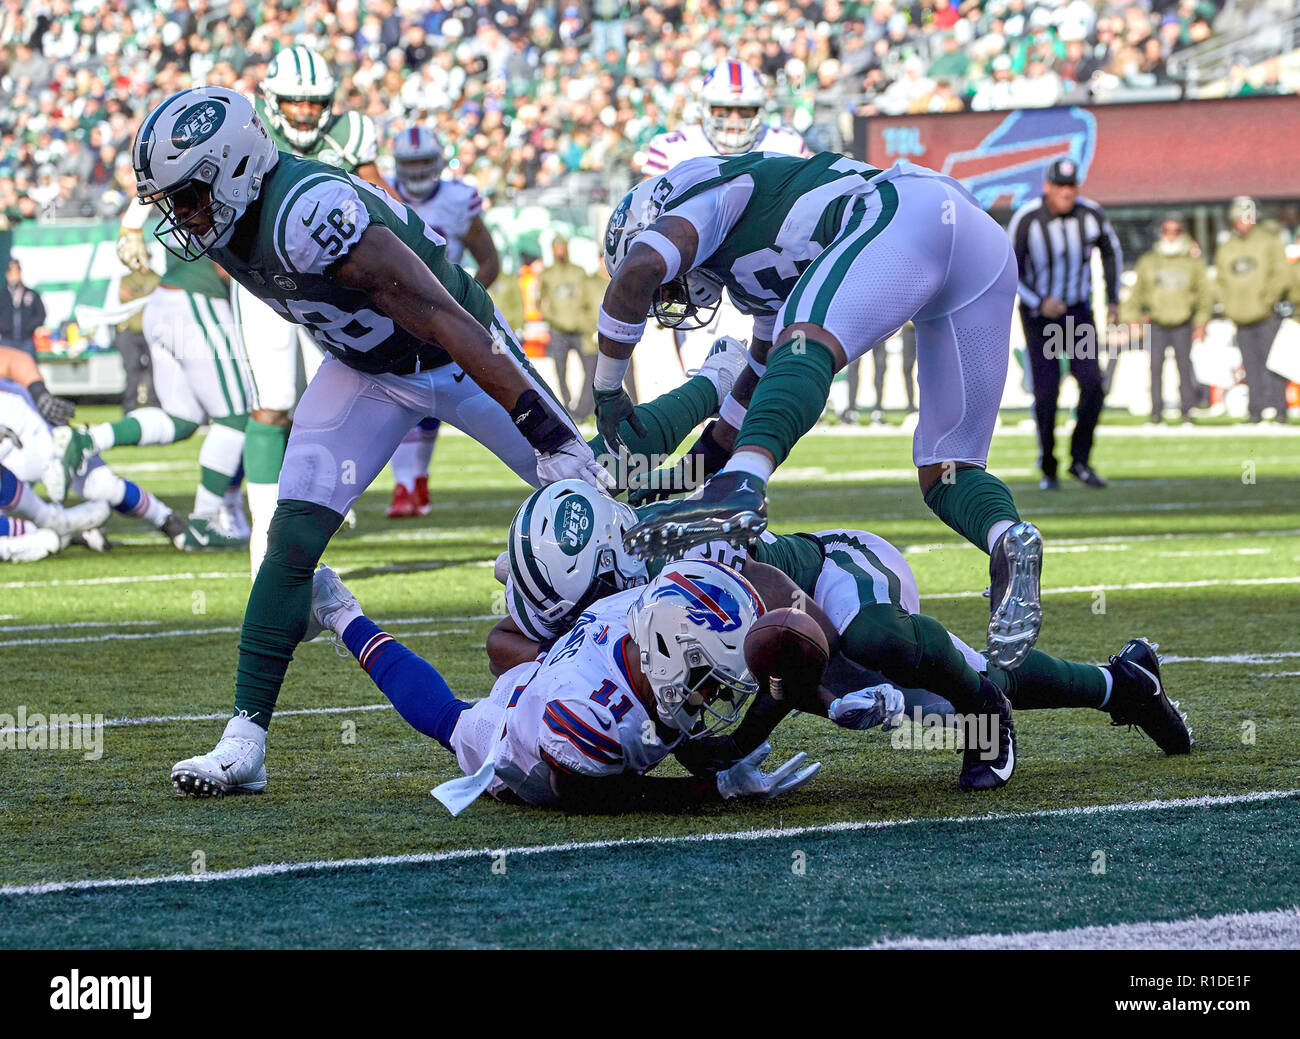 East Rutherford, New Jersey, USA. 11th Nov, 2018. Buffalo Bills wide